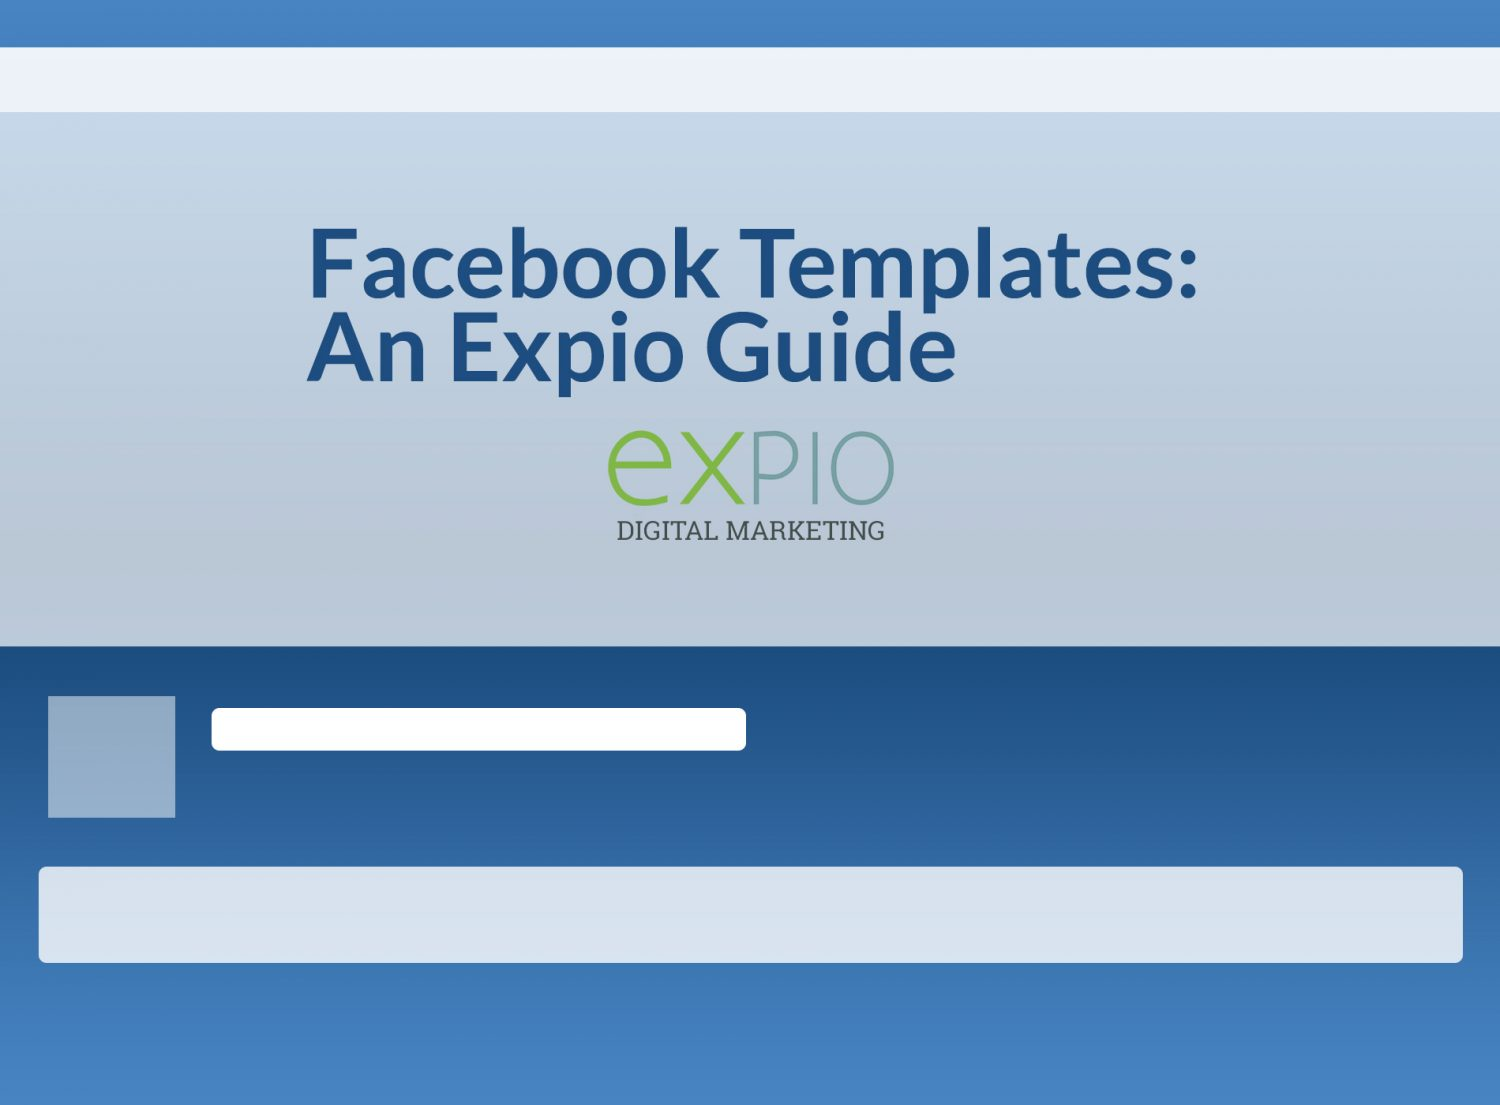 Facebook Page Templates 2017 Guide from Expio Digital Marketing